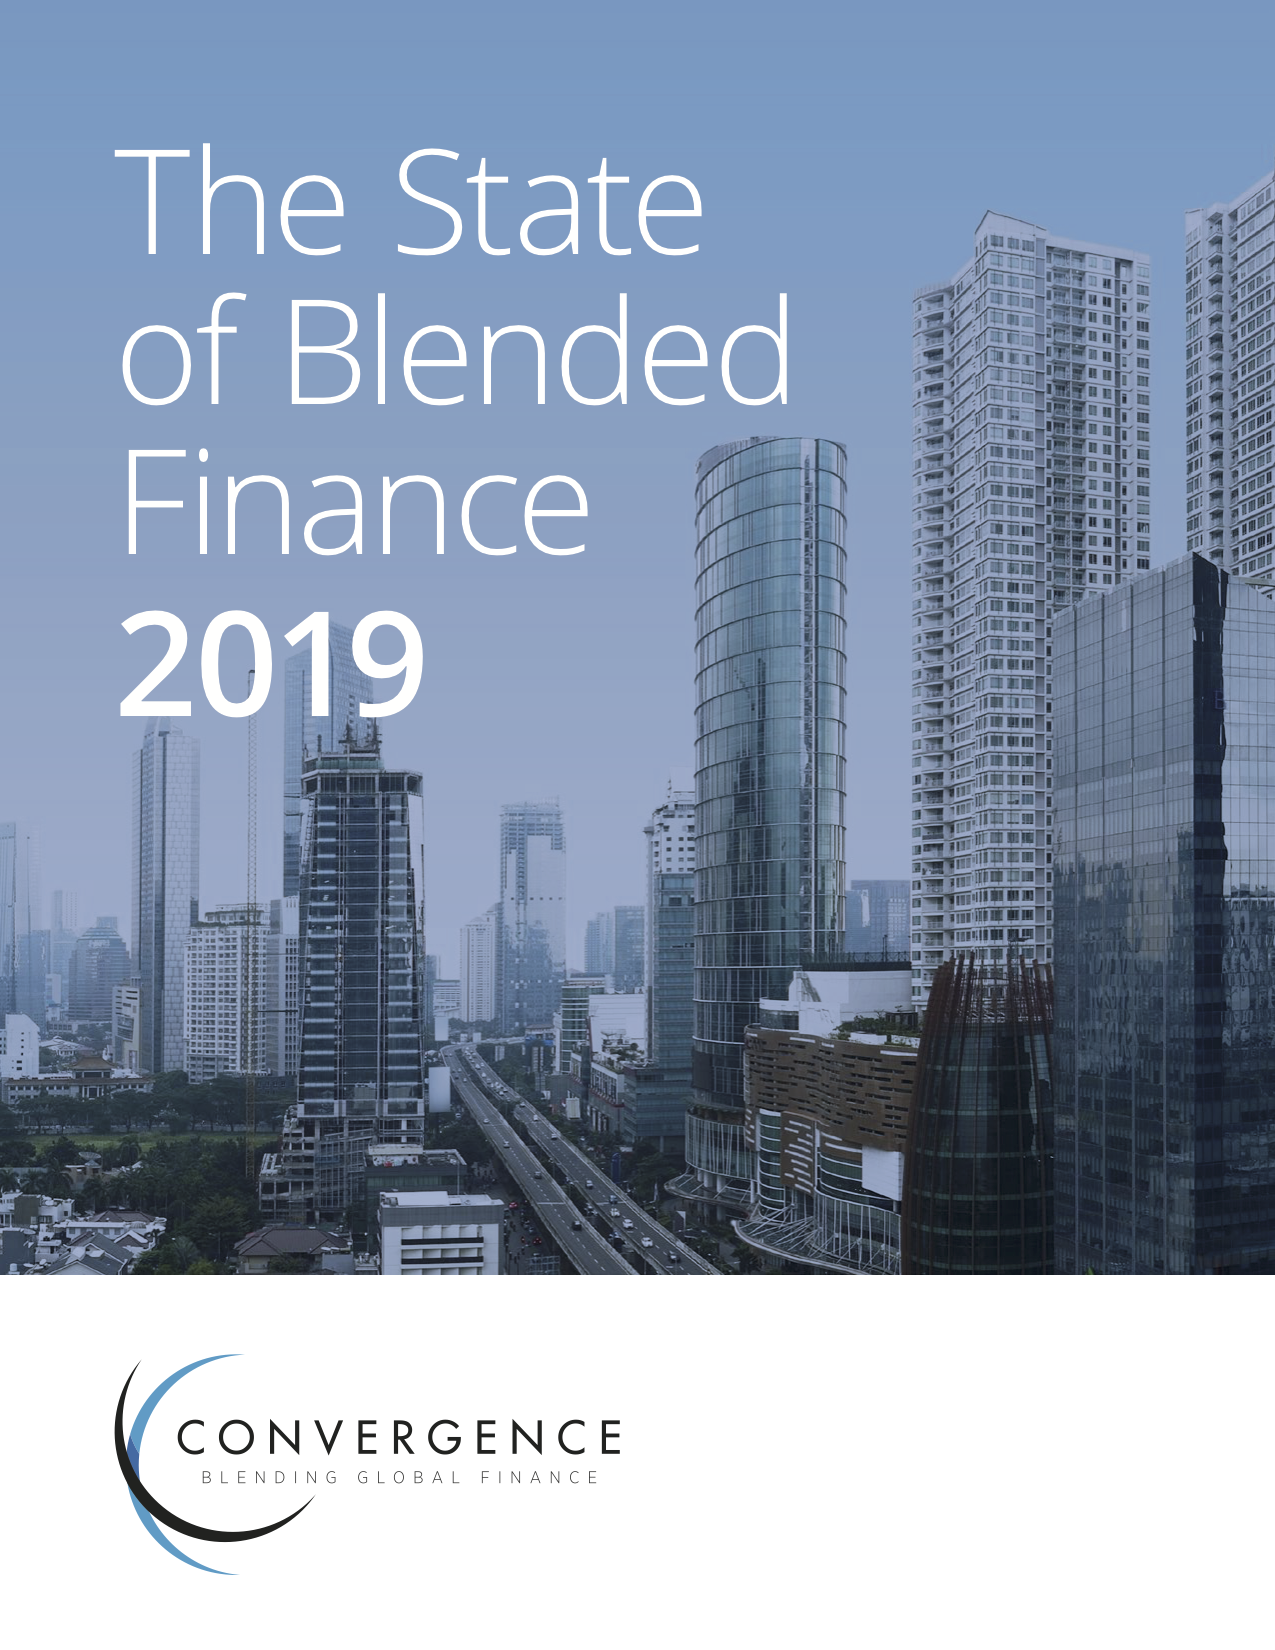 The State of Blended Finance 2019